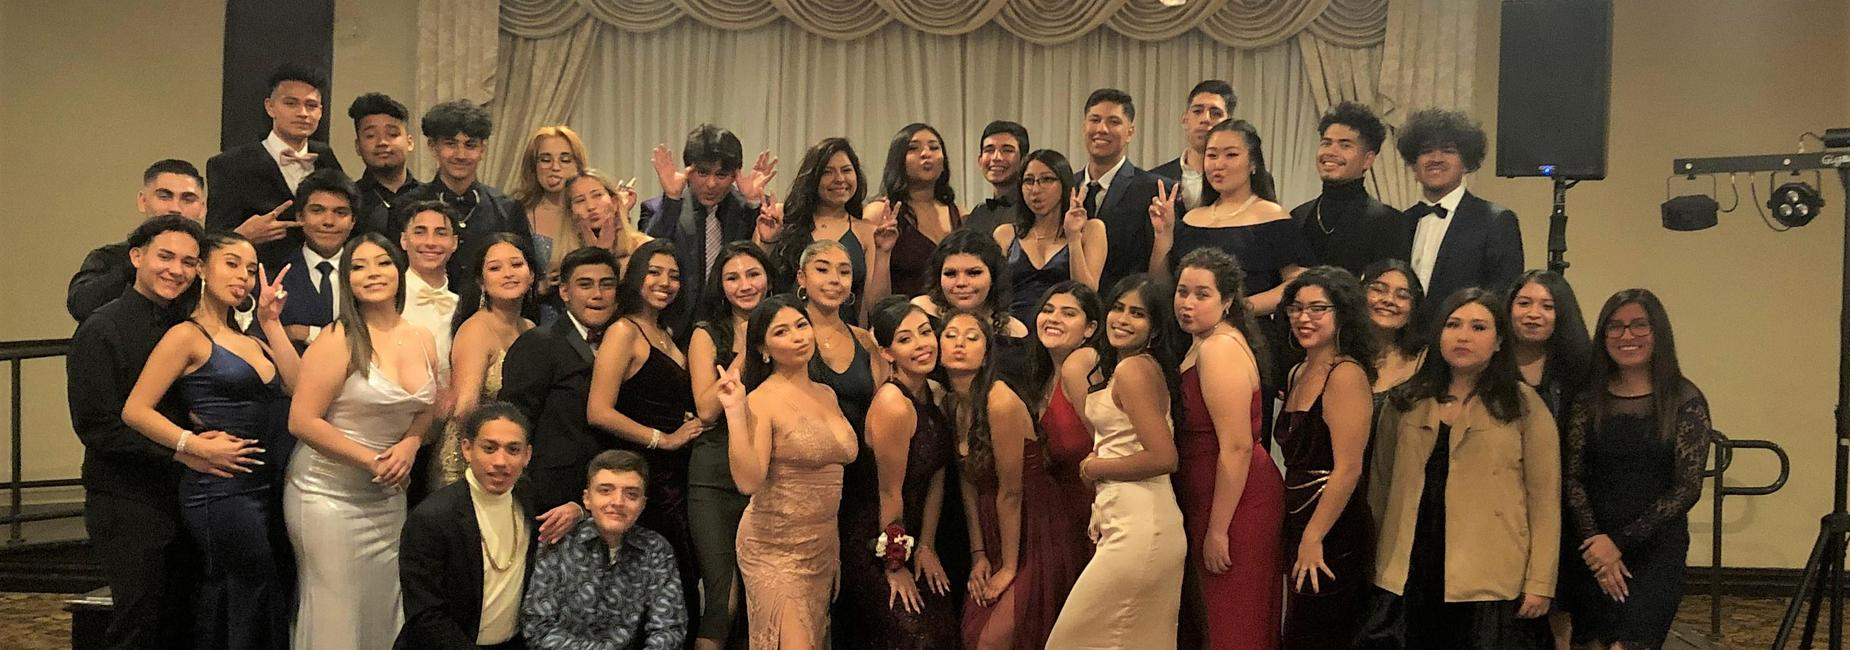 Senior Class 2020 Winter Formal